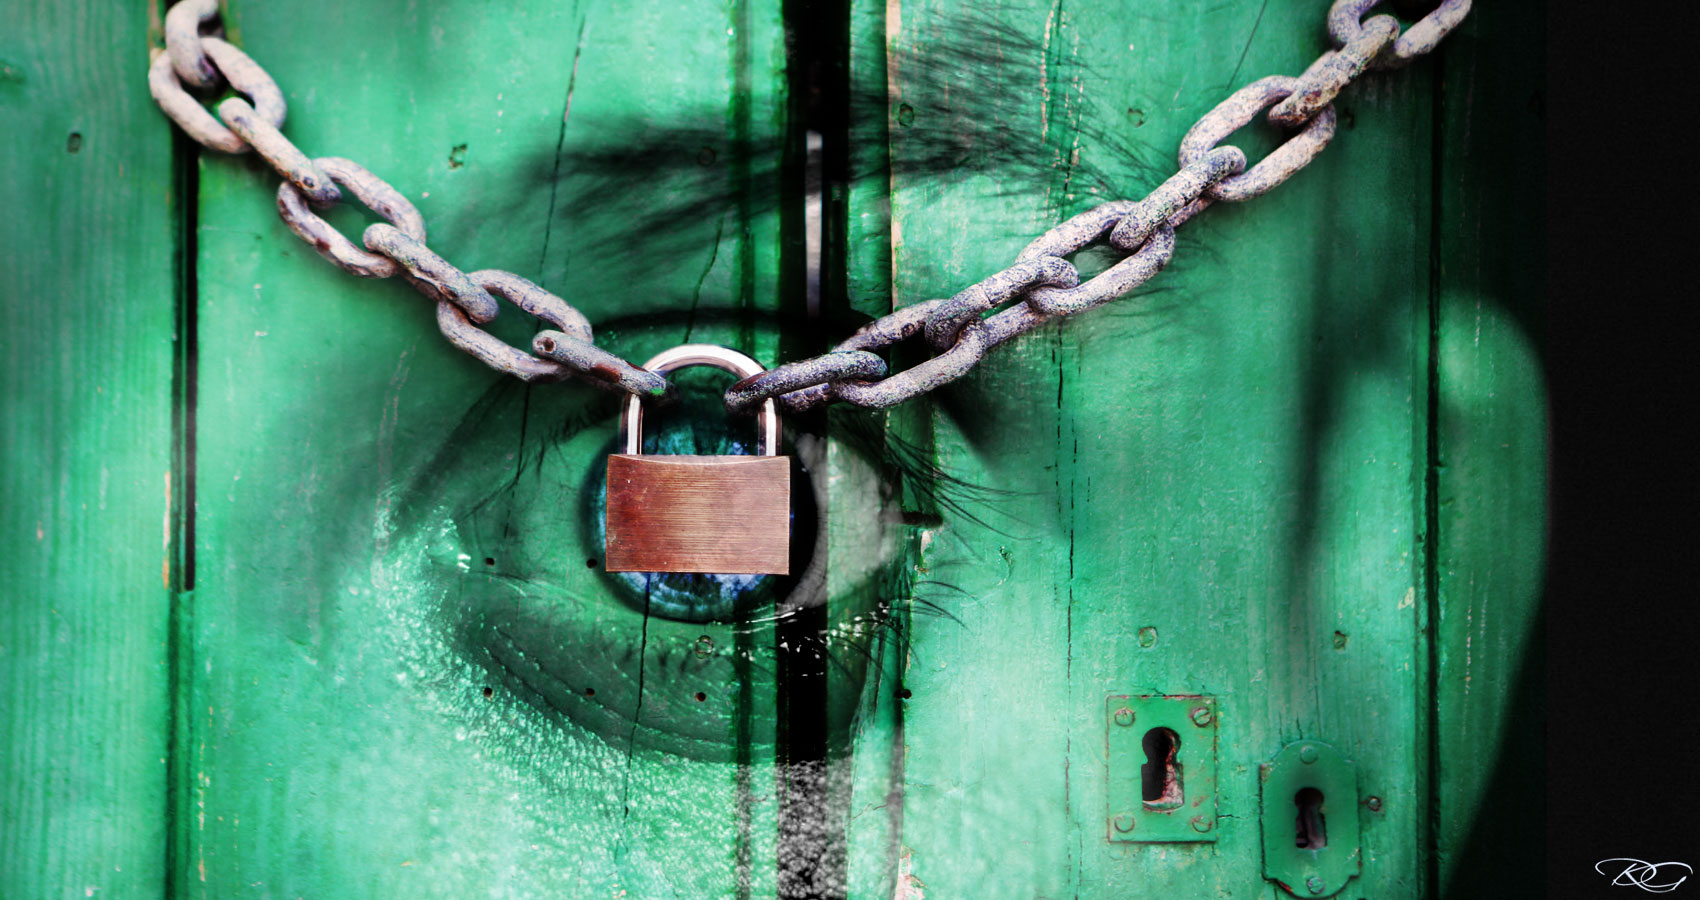 Locked Away written by David Wagoner at Spillwords.com